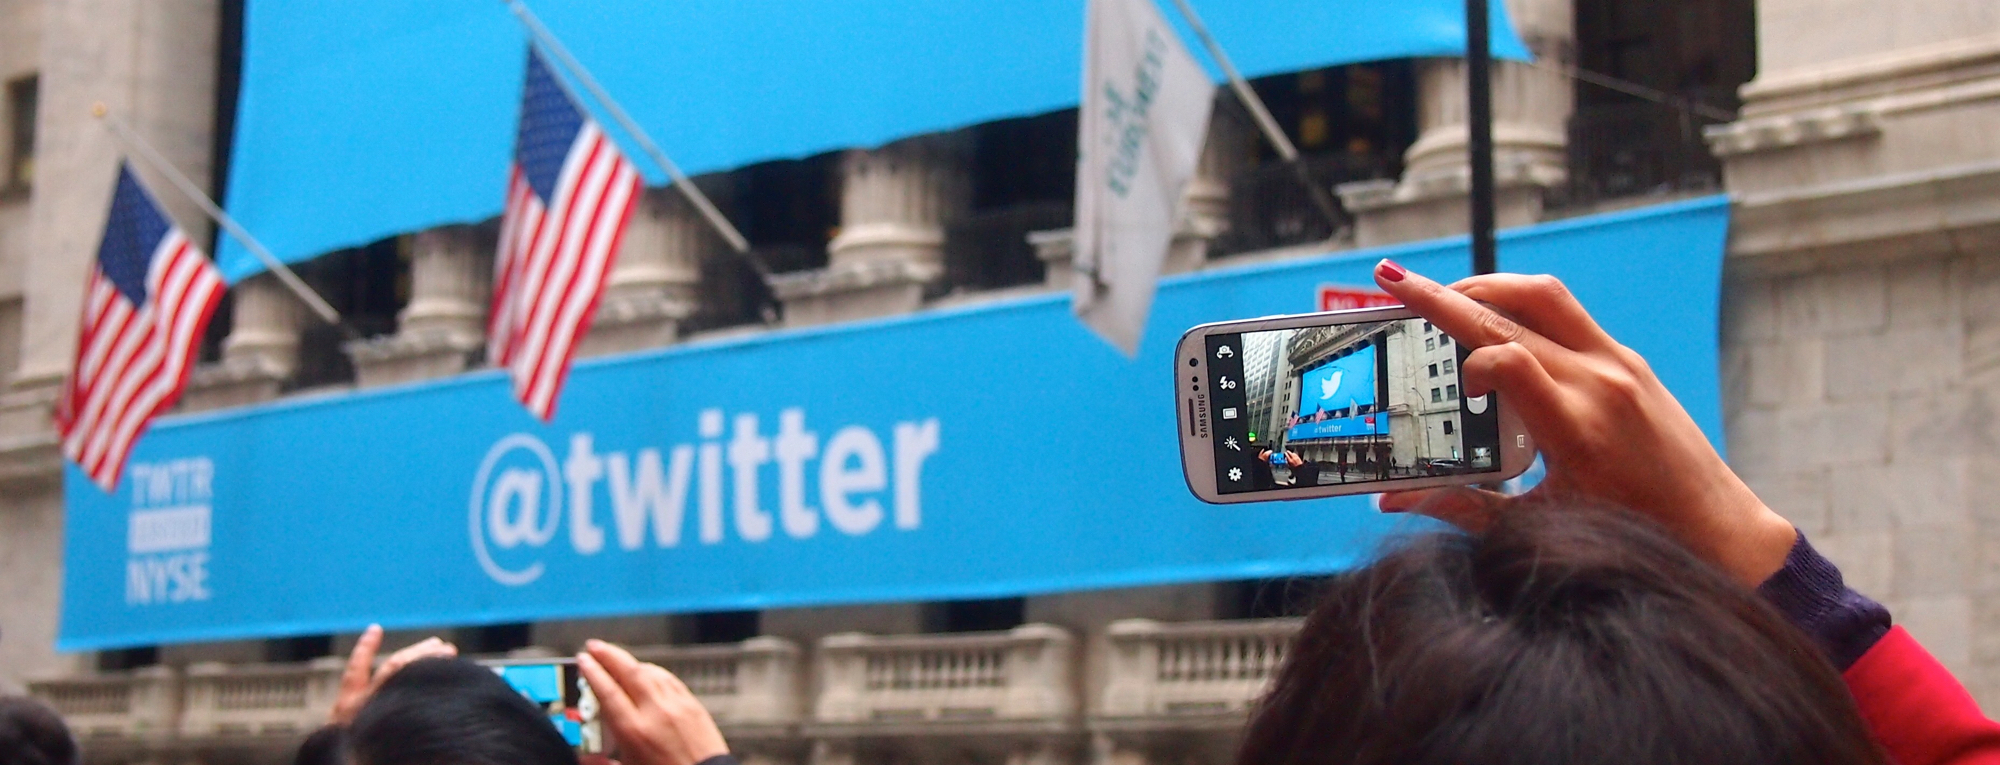 Twitter Isn't about News, Tweets or Even You Anymore